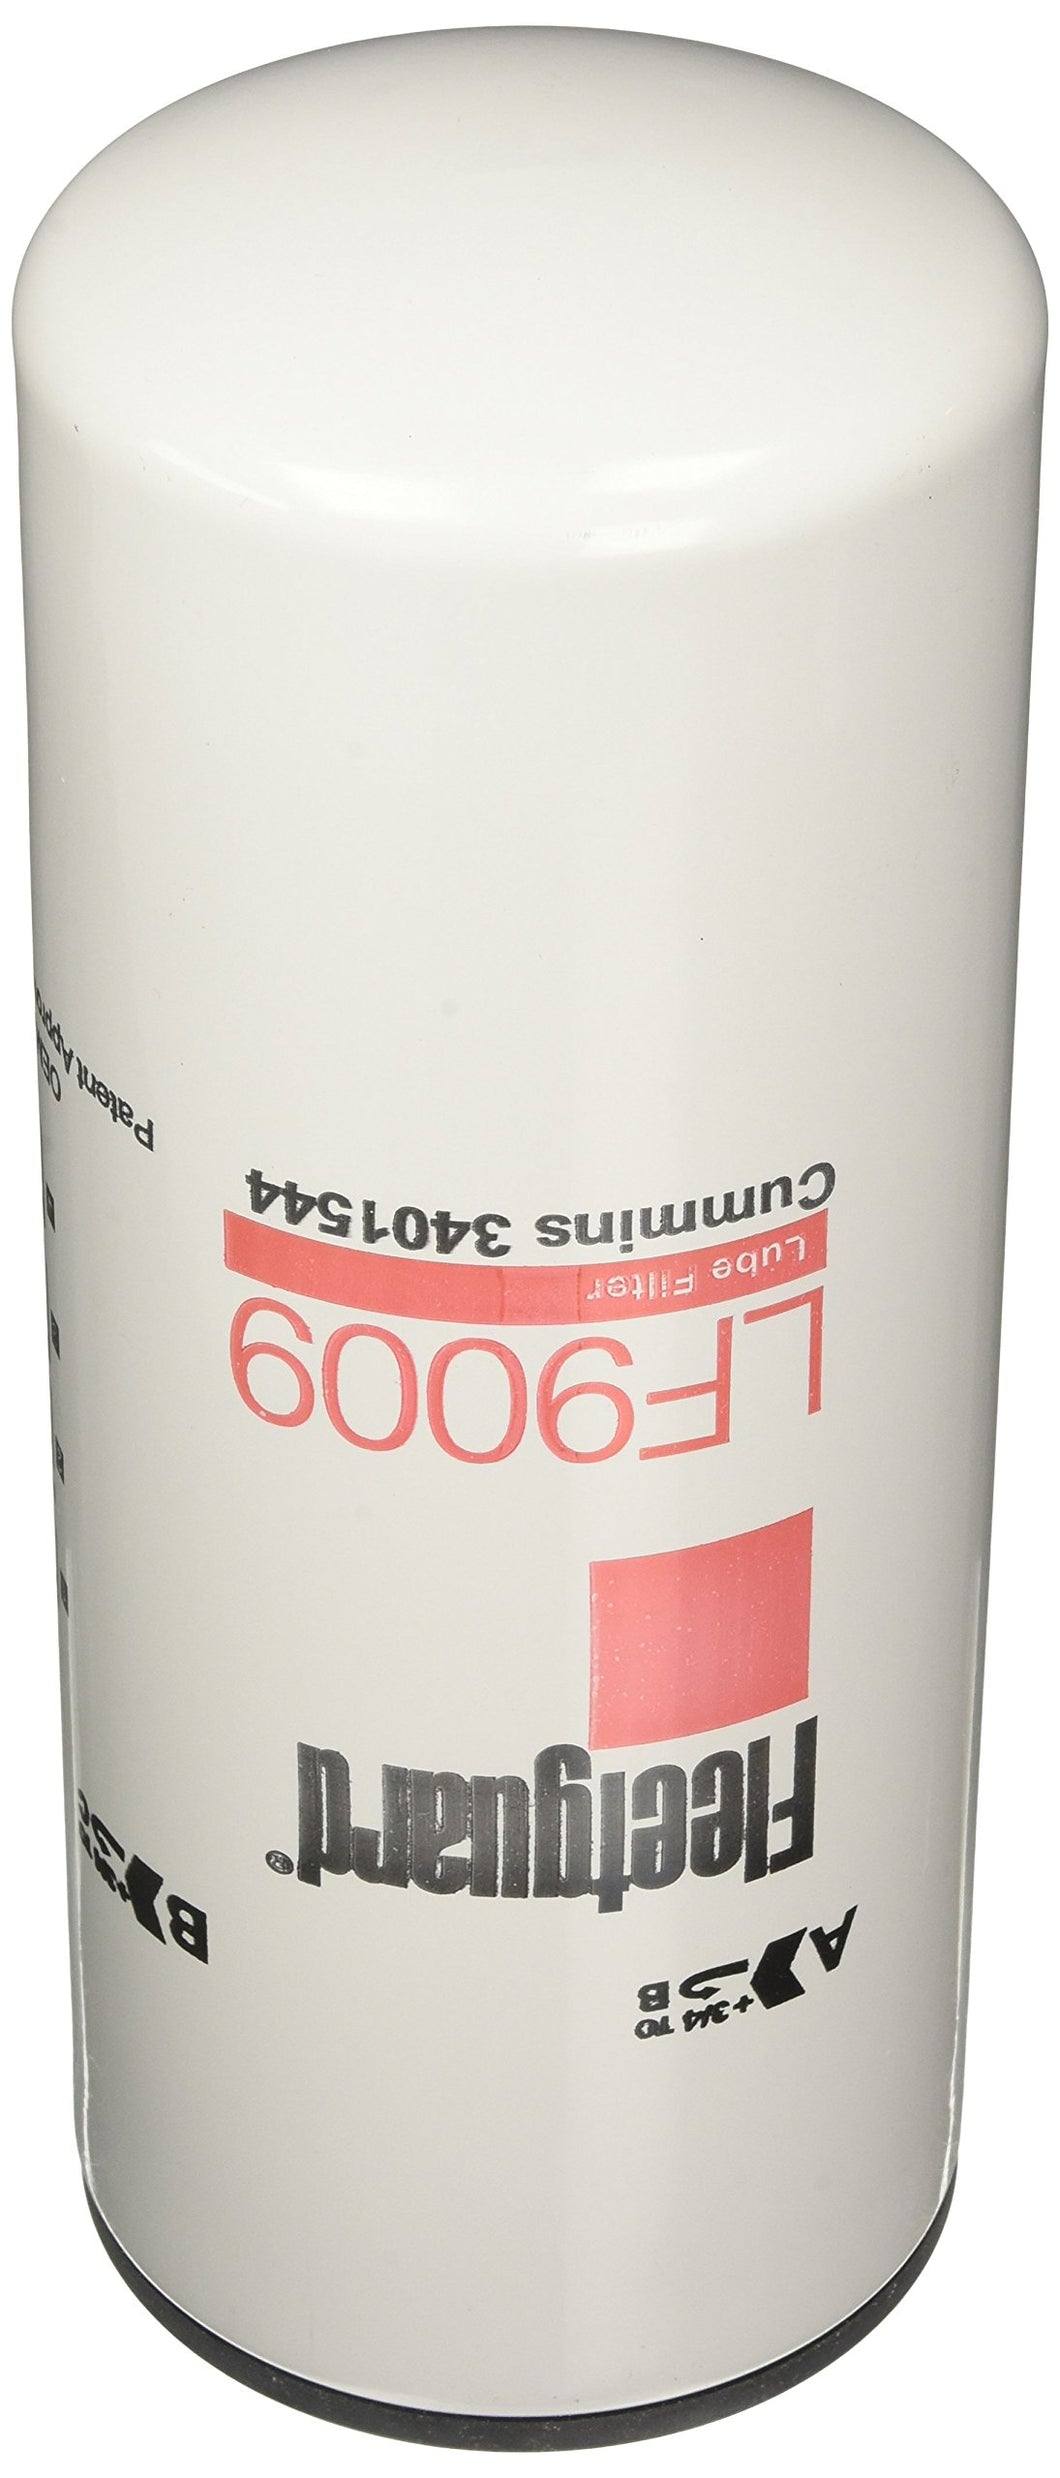 Cummins Filtration LF9009 Oil/Lube Filter, 1 Pack